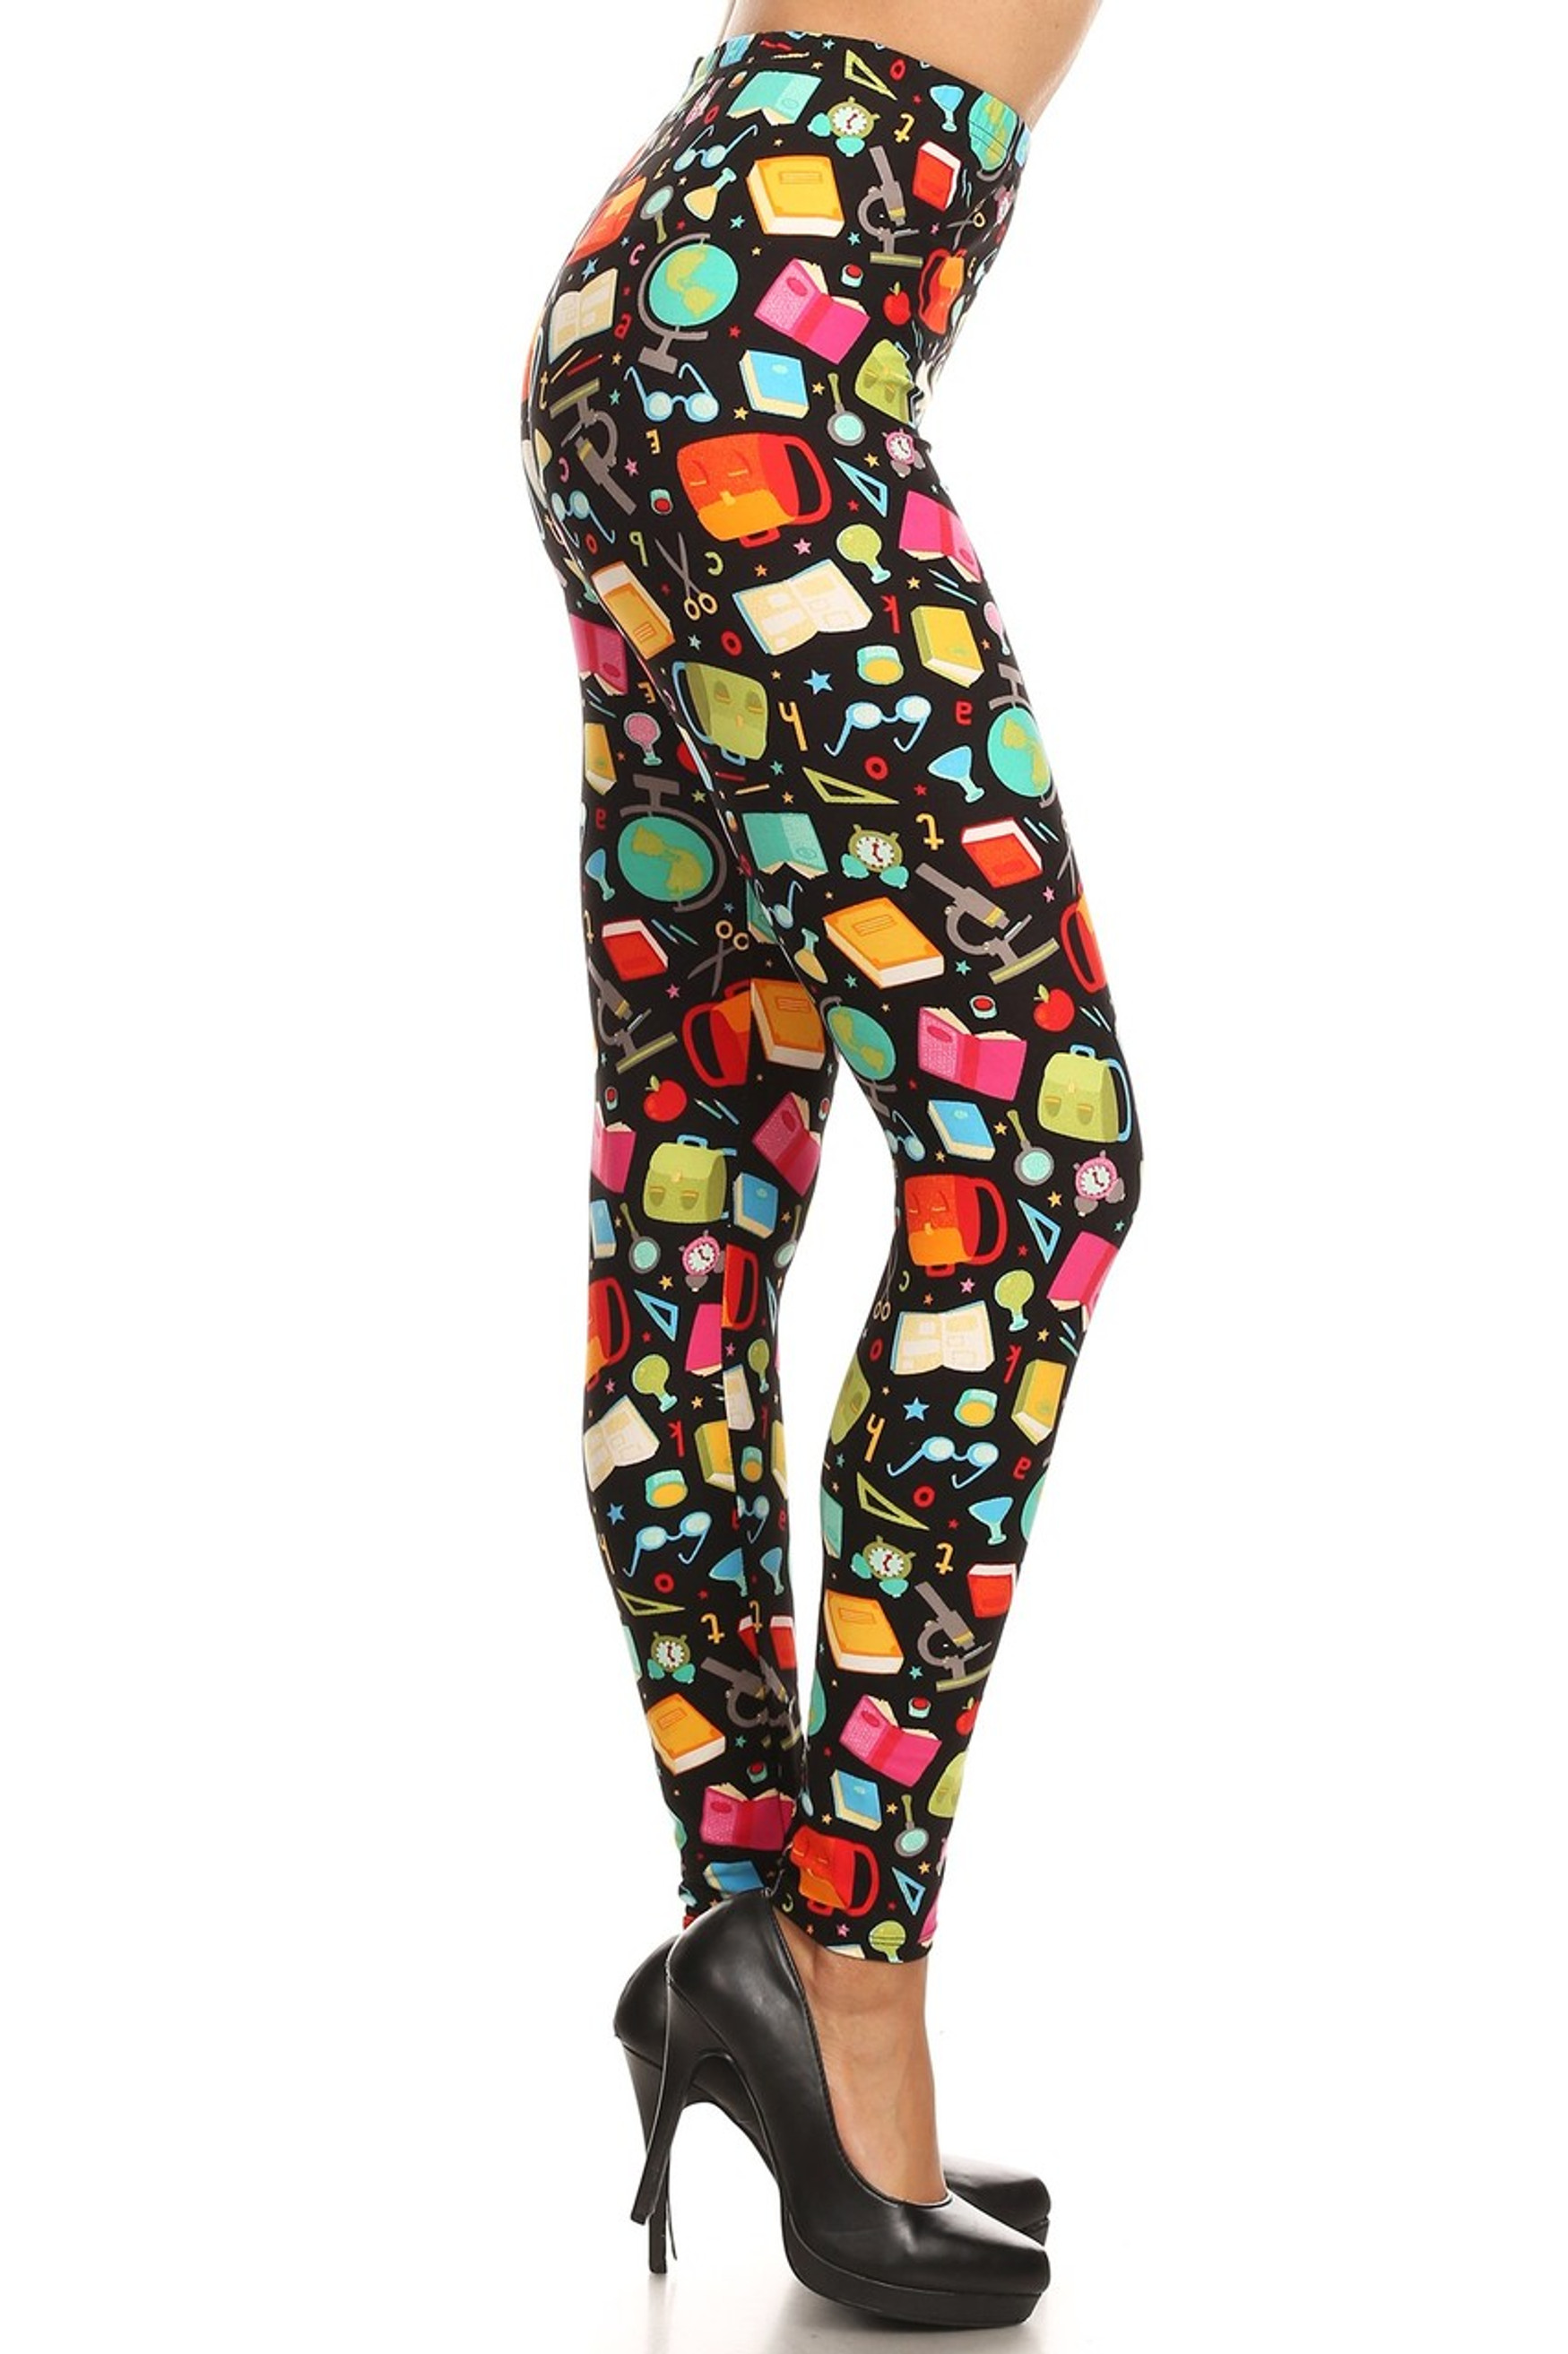 Brushed Colorful Student Plus Size Leggings - 3X-5X